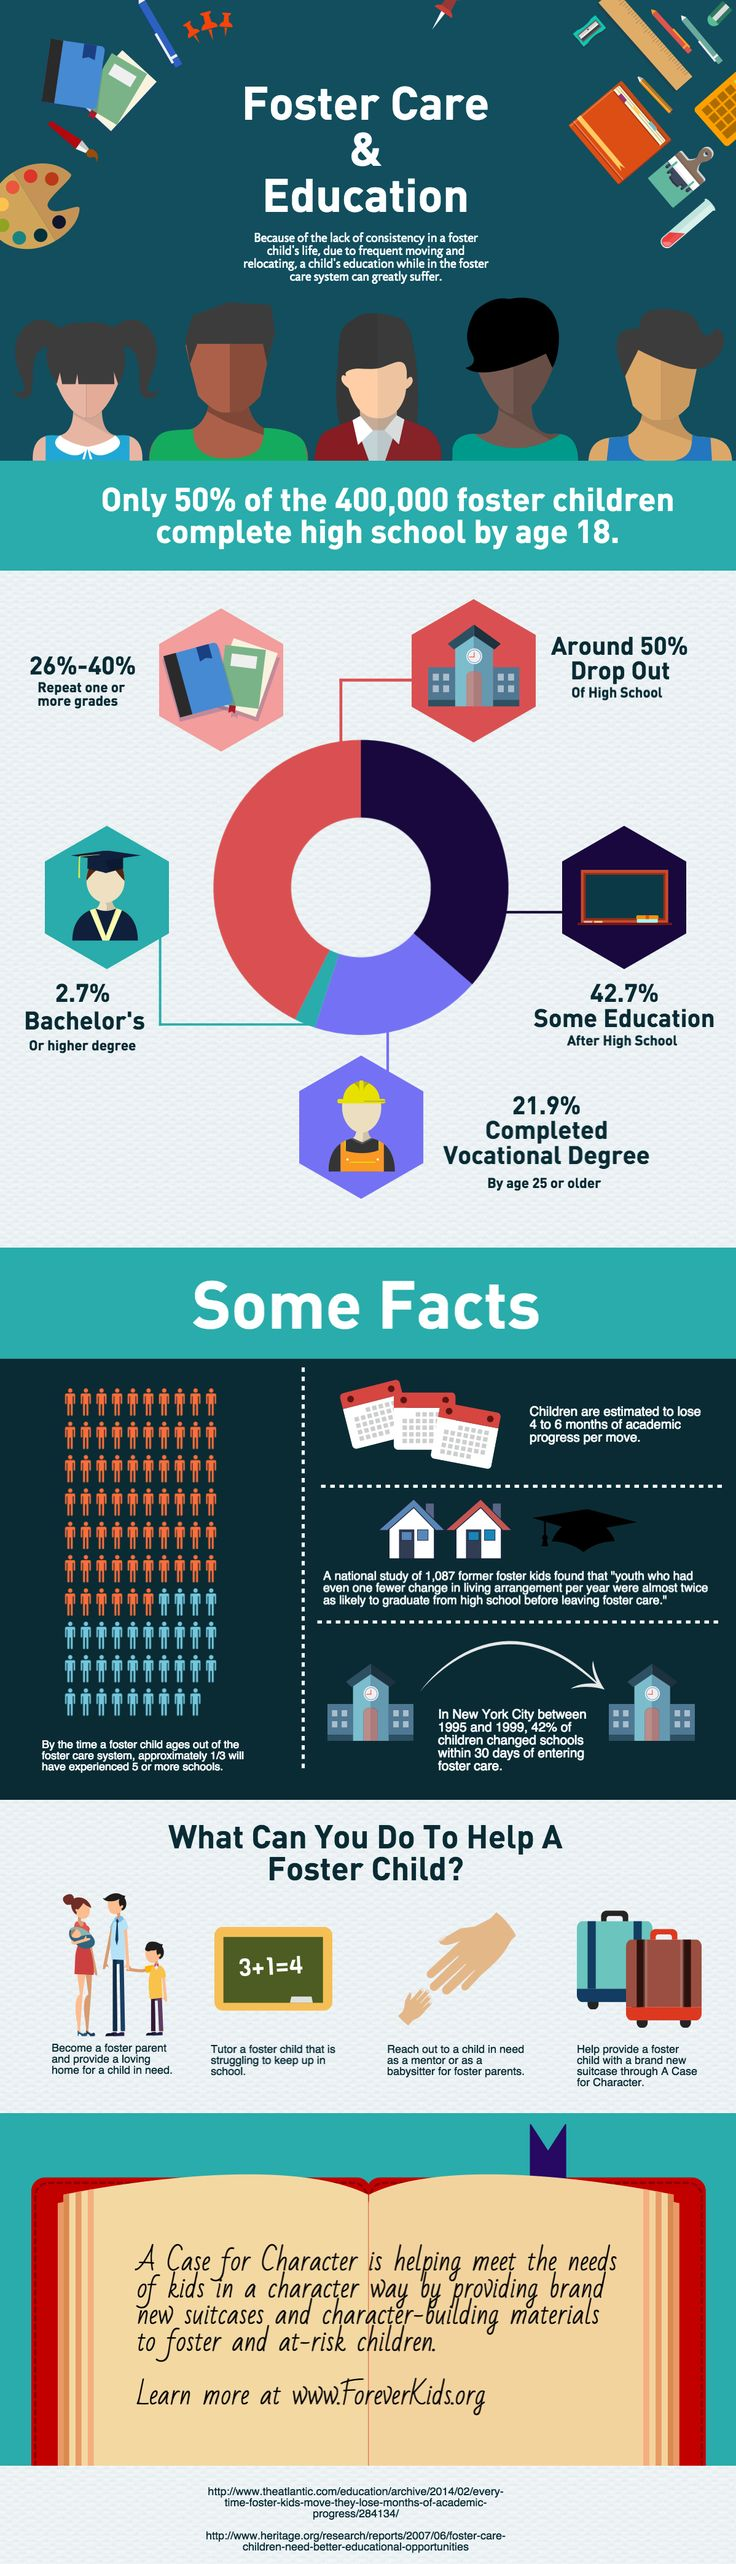 Foster Care & Education | Because of the lack of consistency in a foster child's life, due to frequent moving and relocating, a child's education while in the foster care system can greatly suffer. | www.foreverkids.org #fostercare #education #infographic